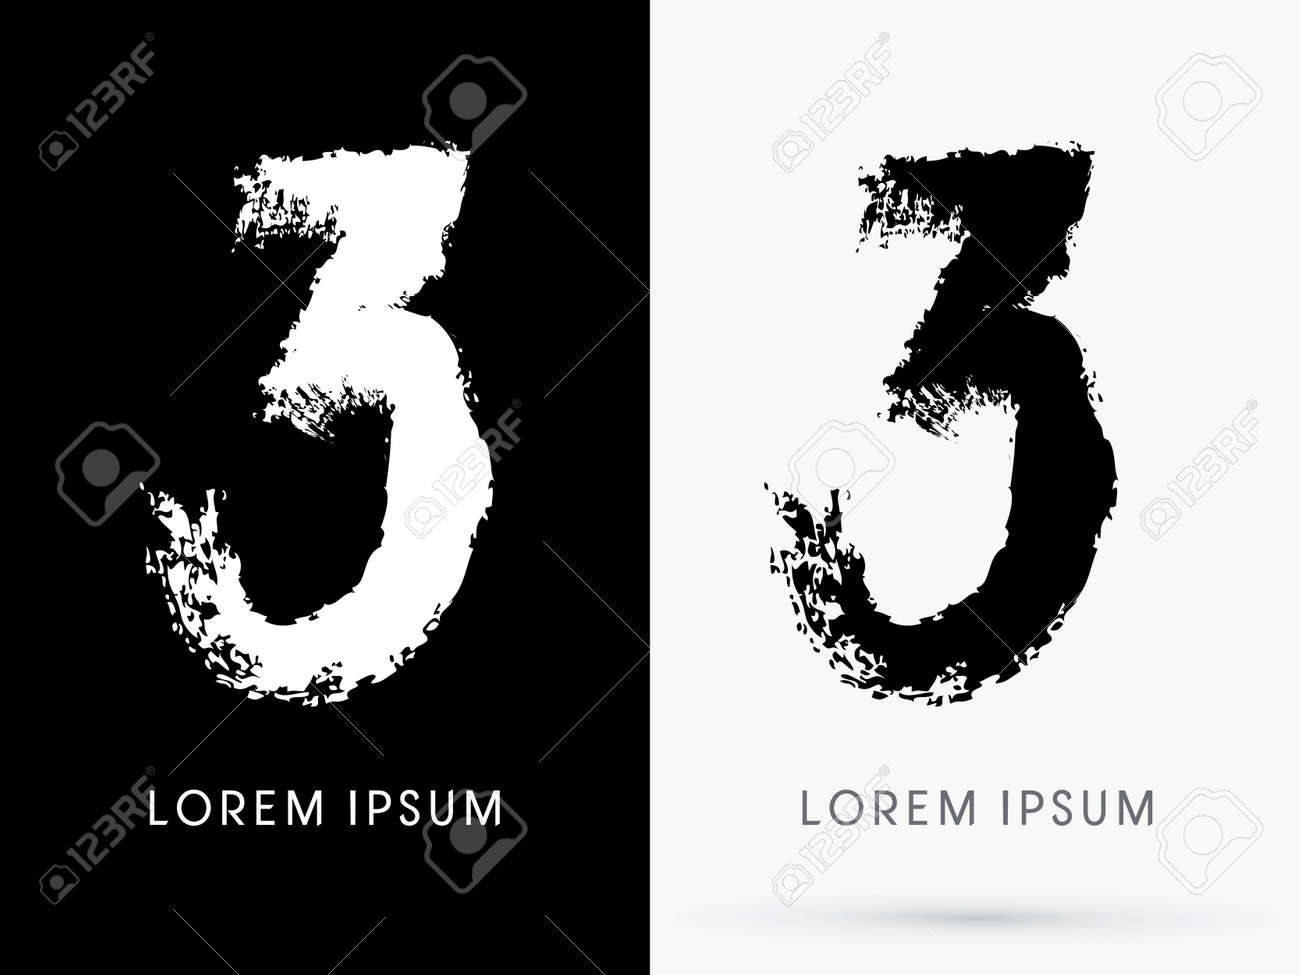 3 Number Grunge Brush Freestyle Font Designed Using Black And White Handwriting Line Shape Logo Symbol